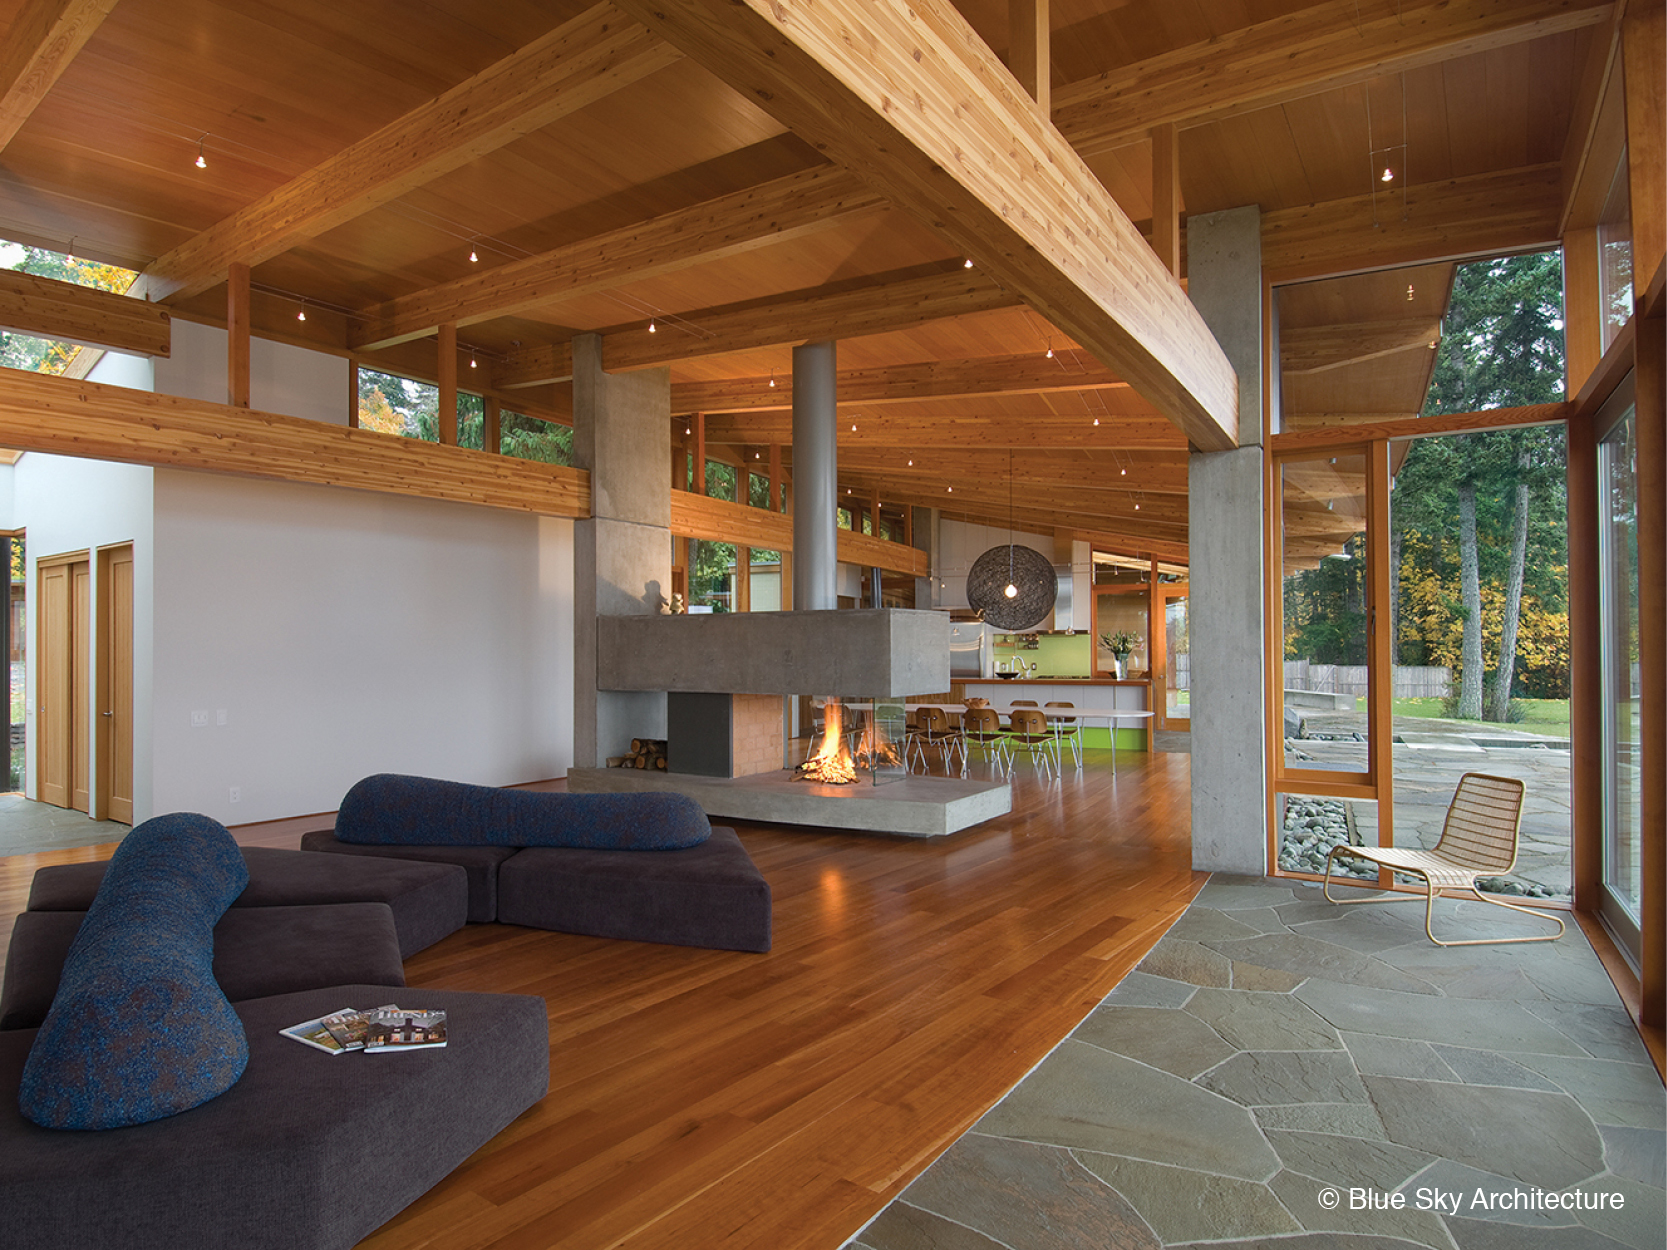 Wood rafter ceilings and open floor plan of Miracle Beach House